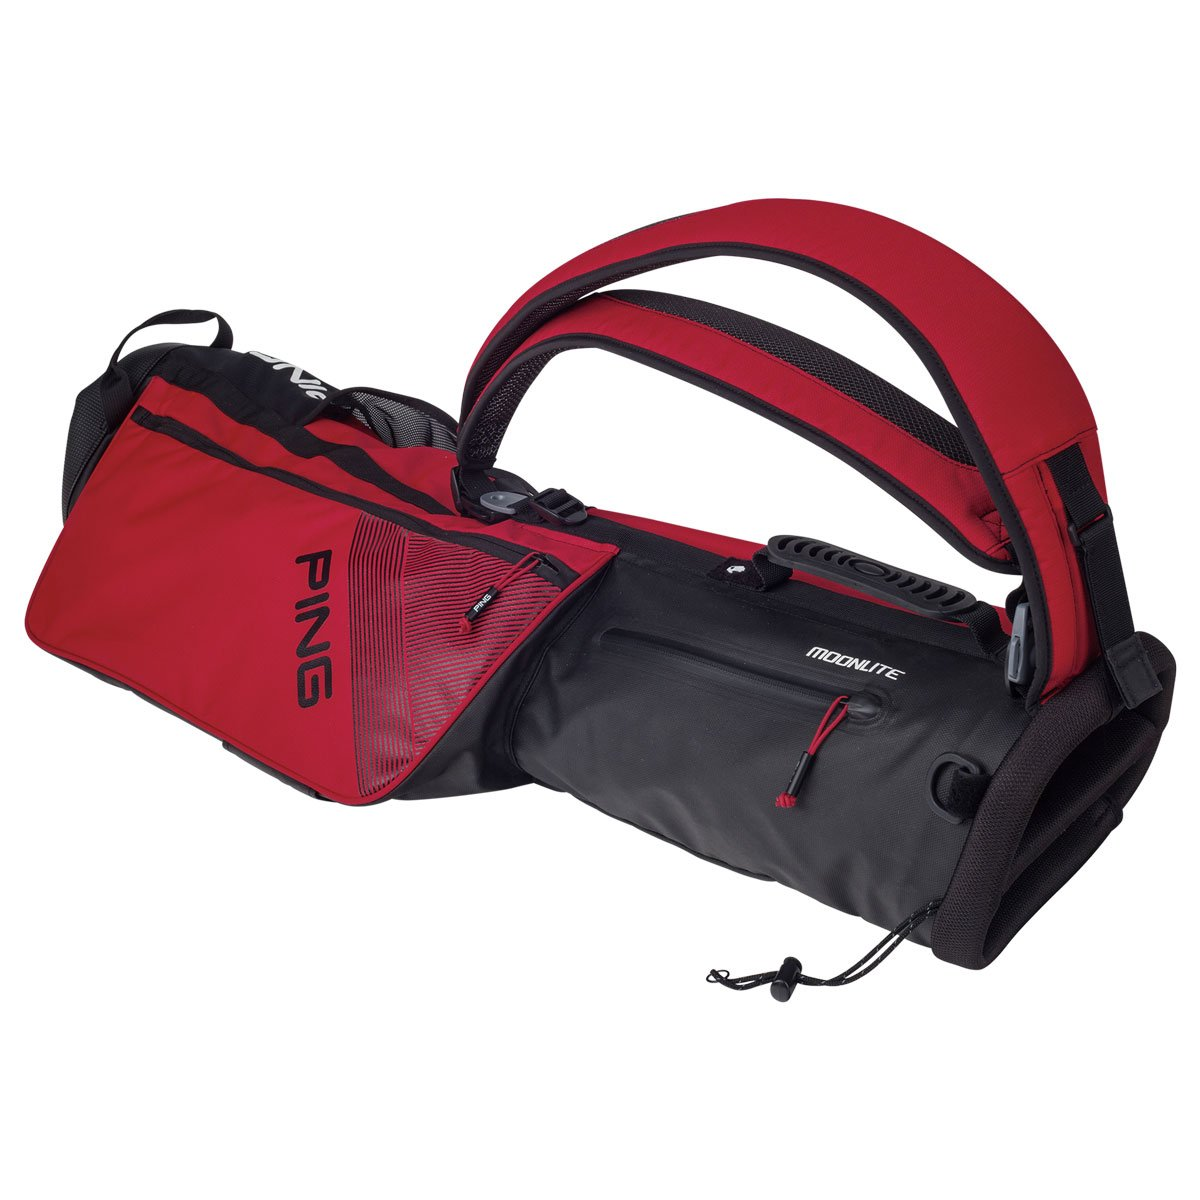 Ping 2018 MOONLITE 181 CARRY GOLF BAG 03 RED